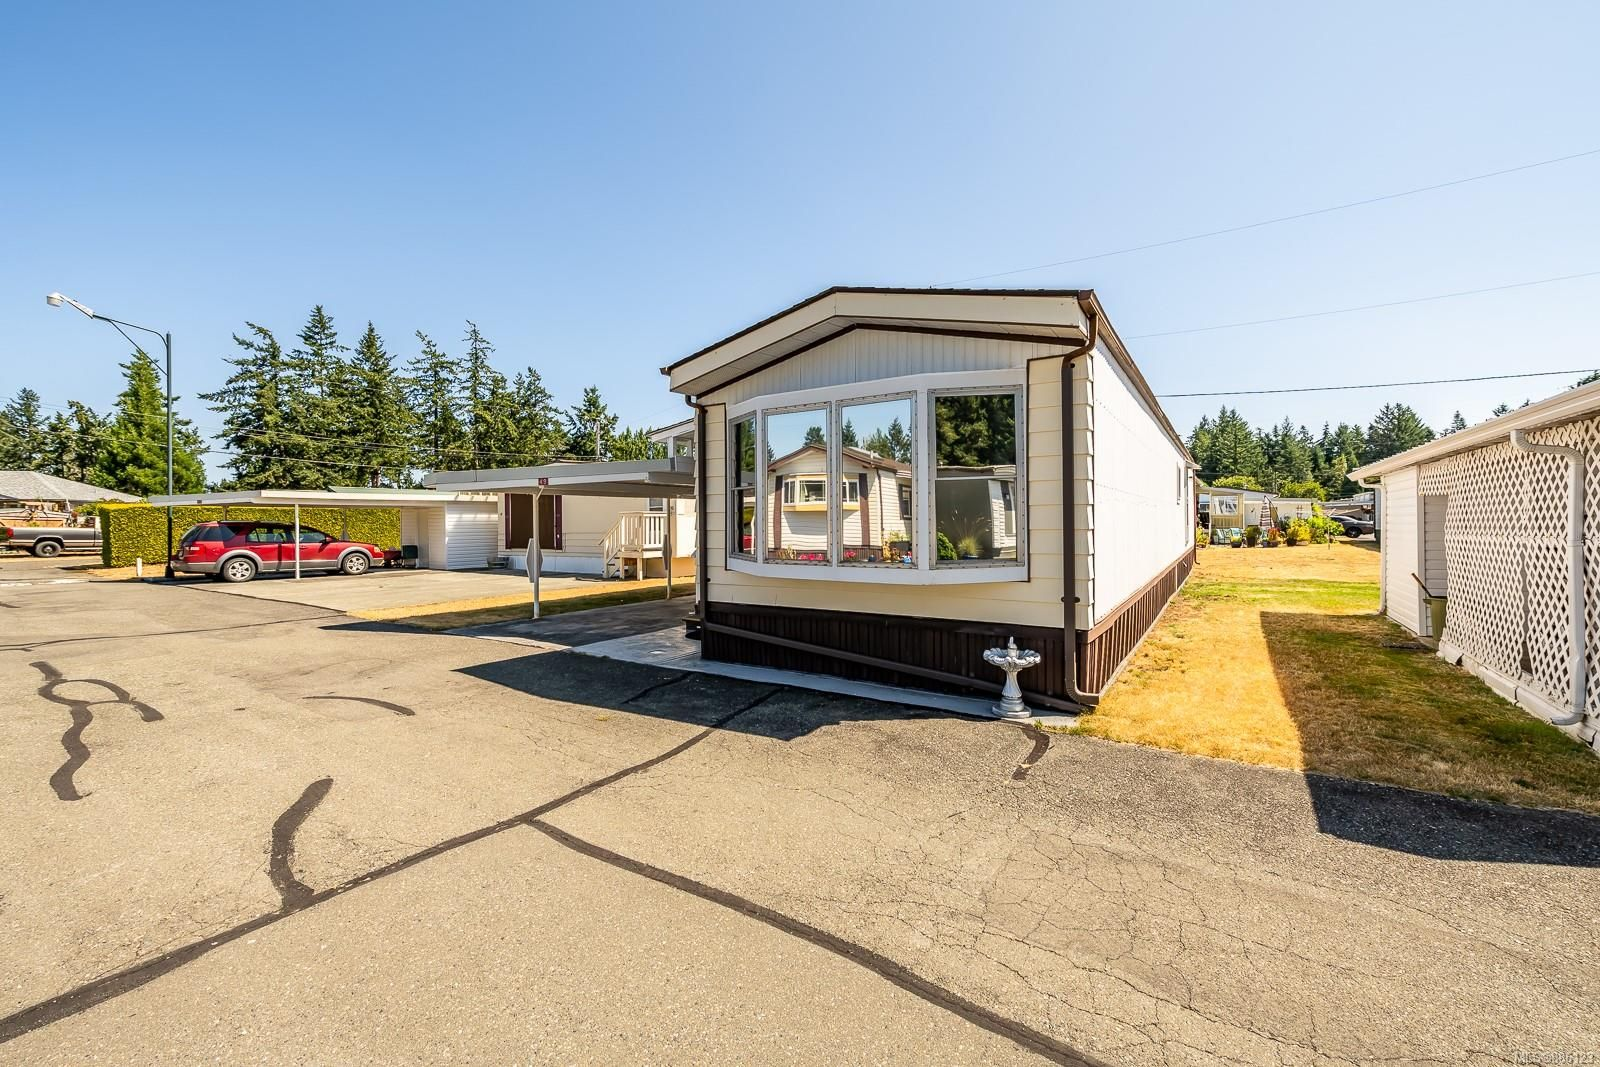 Main Photo: 49 1240 Wilkinson Rd in : CV Comox Peninsula Manufactured Home for sale (Comox Valley)  : MLS®# 886123